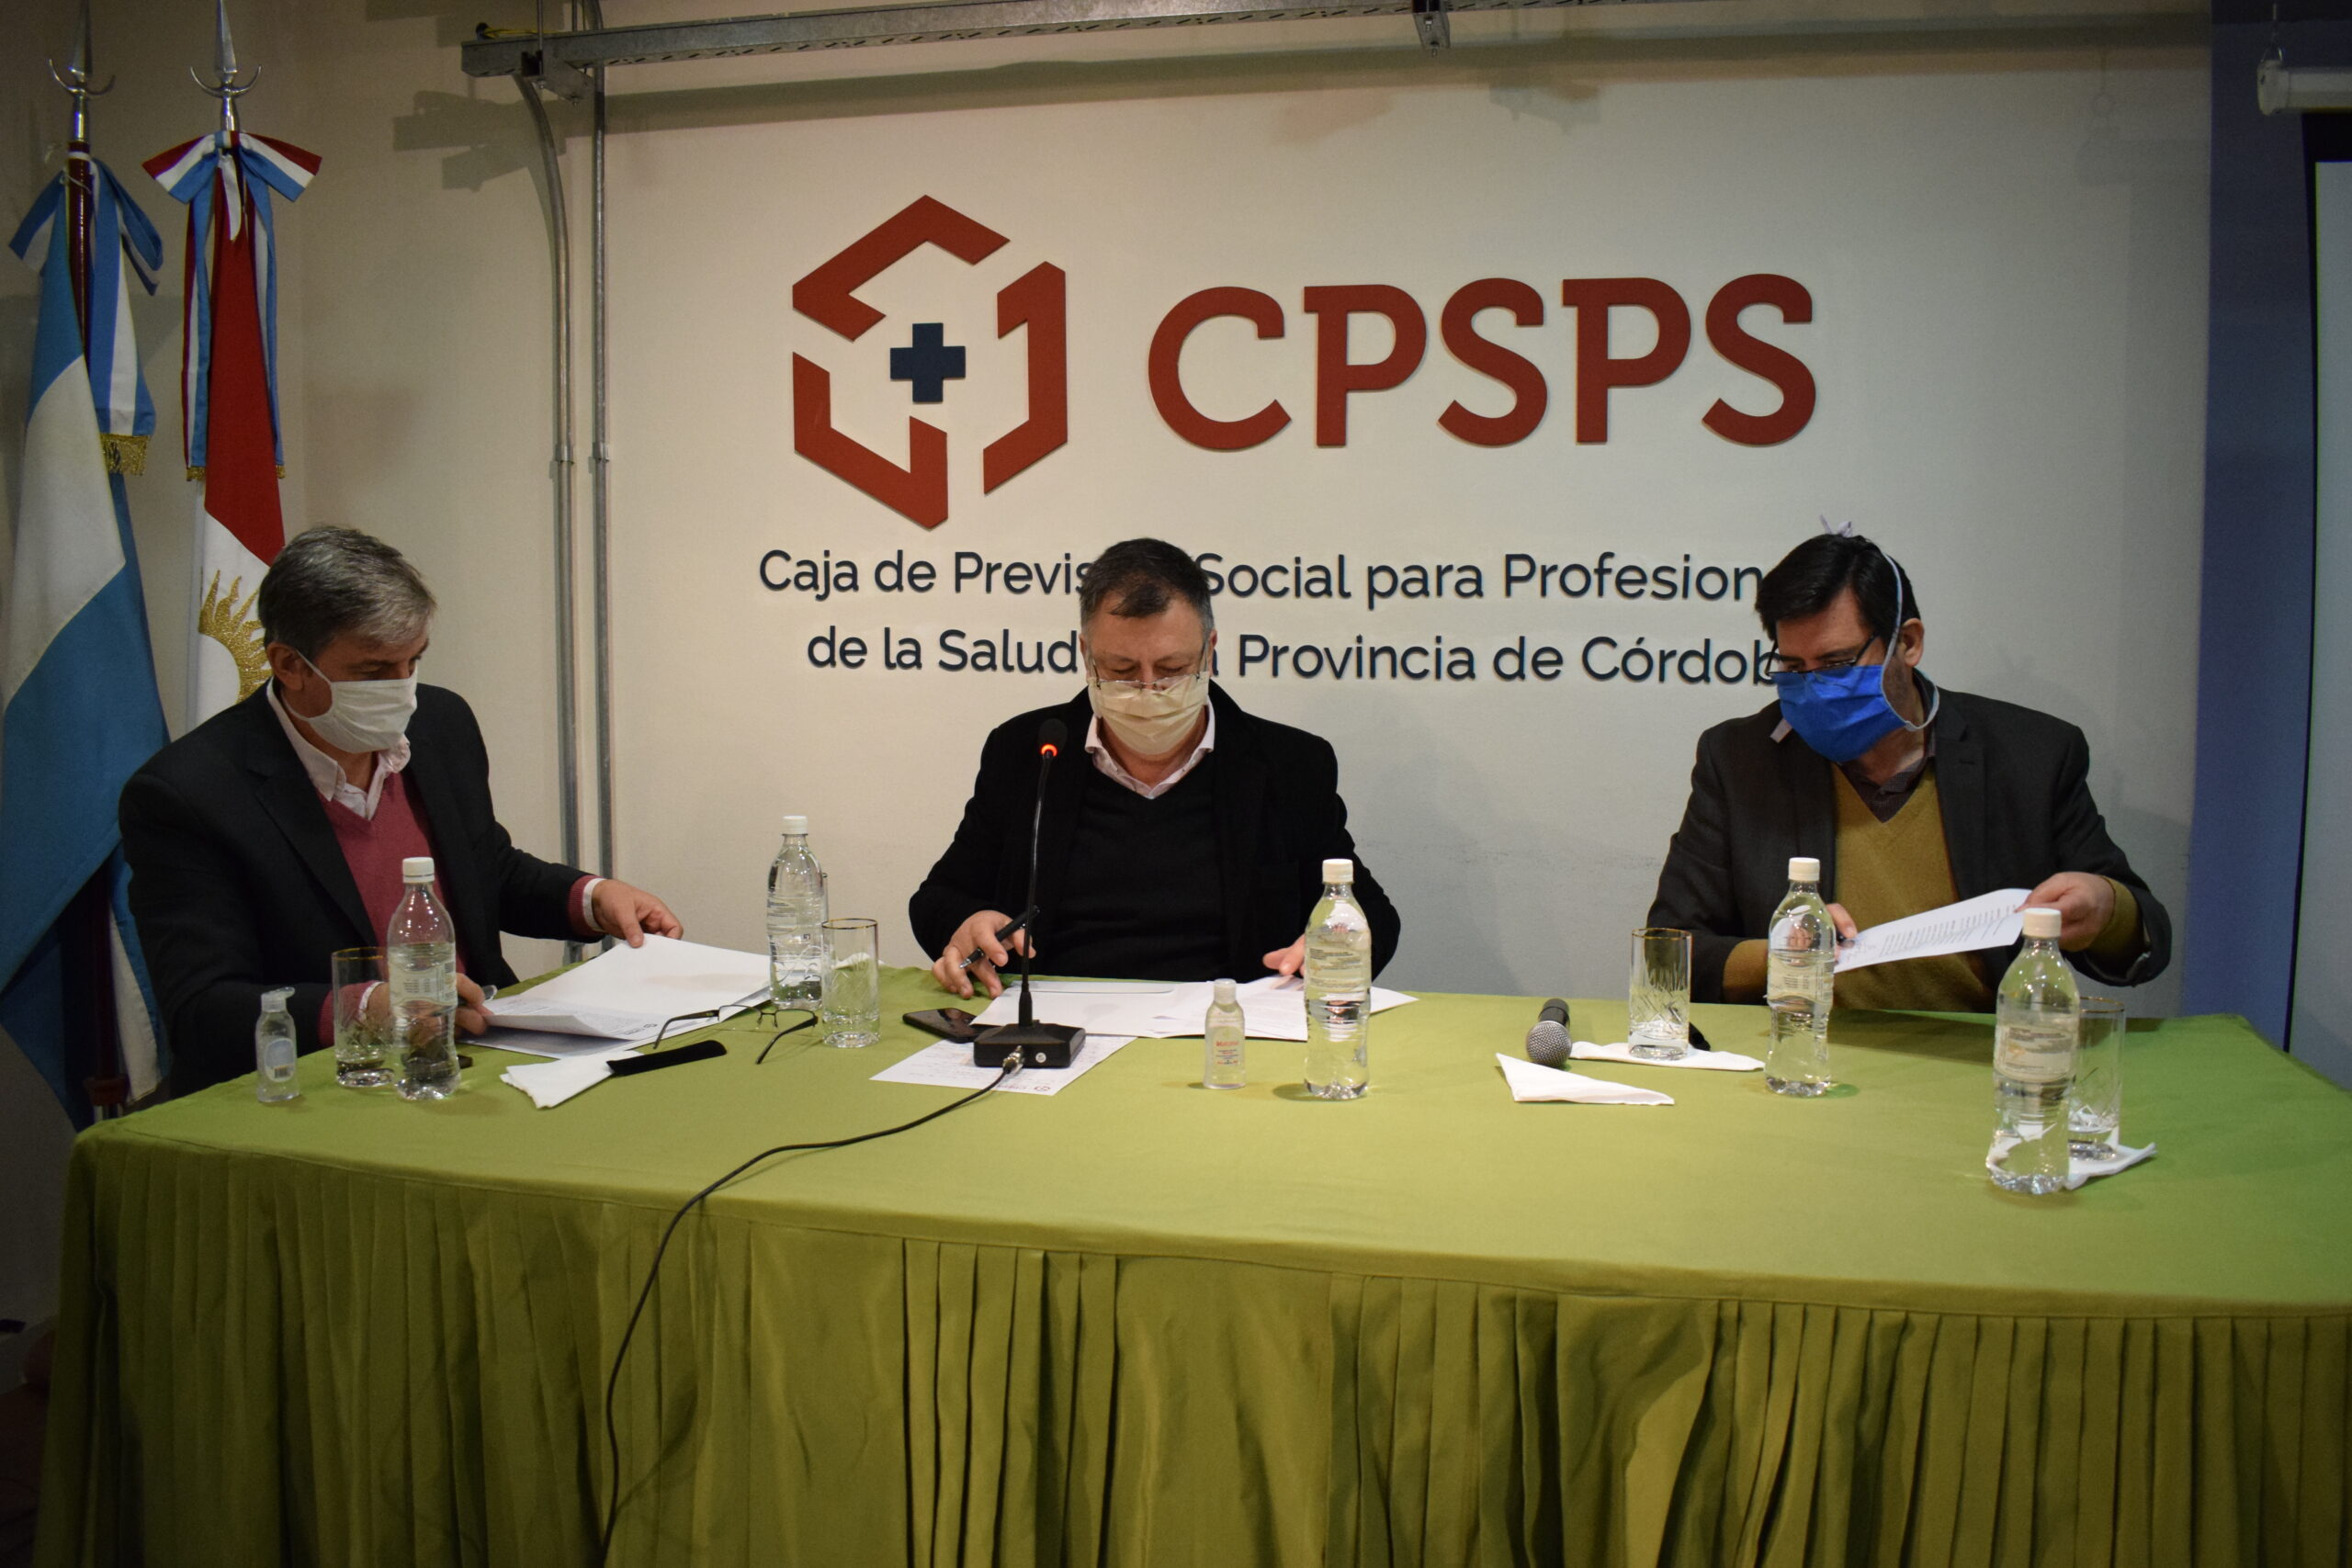 Firma CPSPS